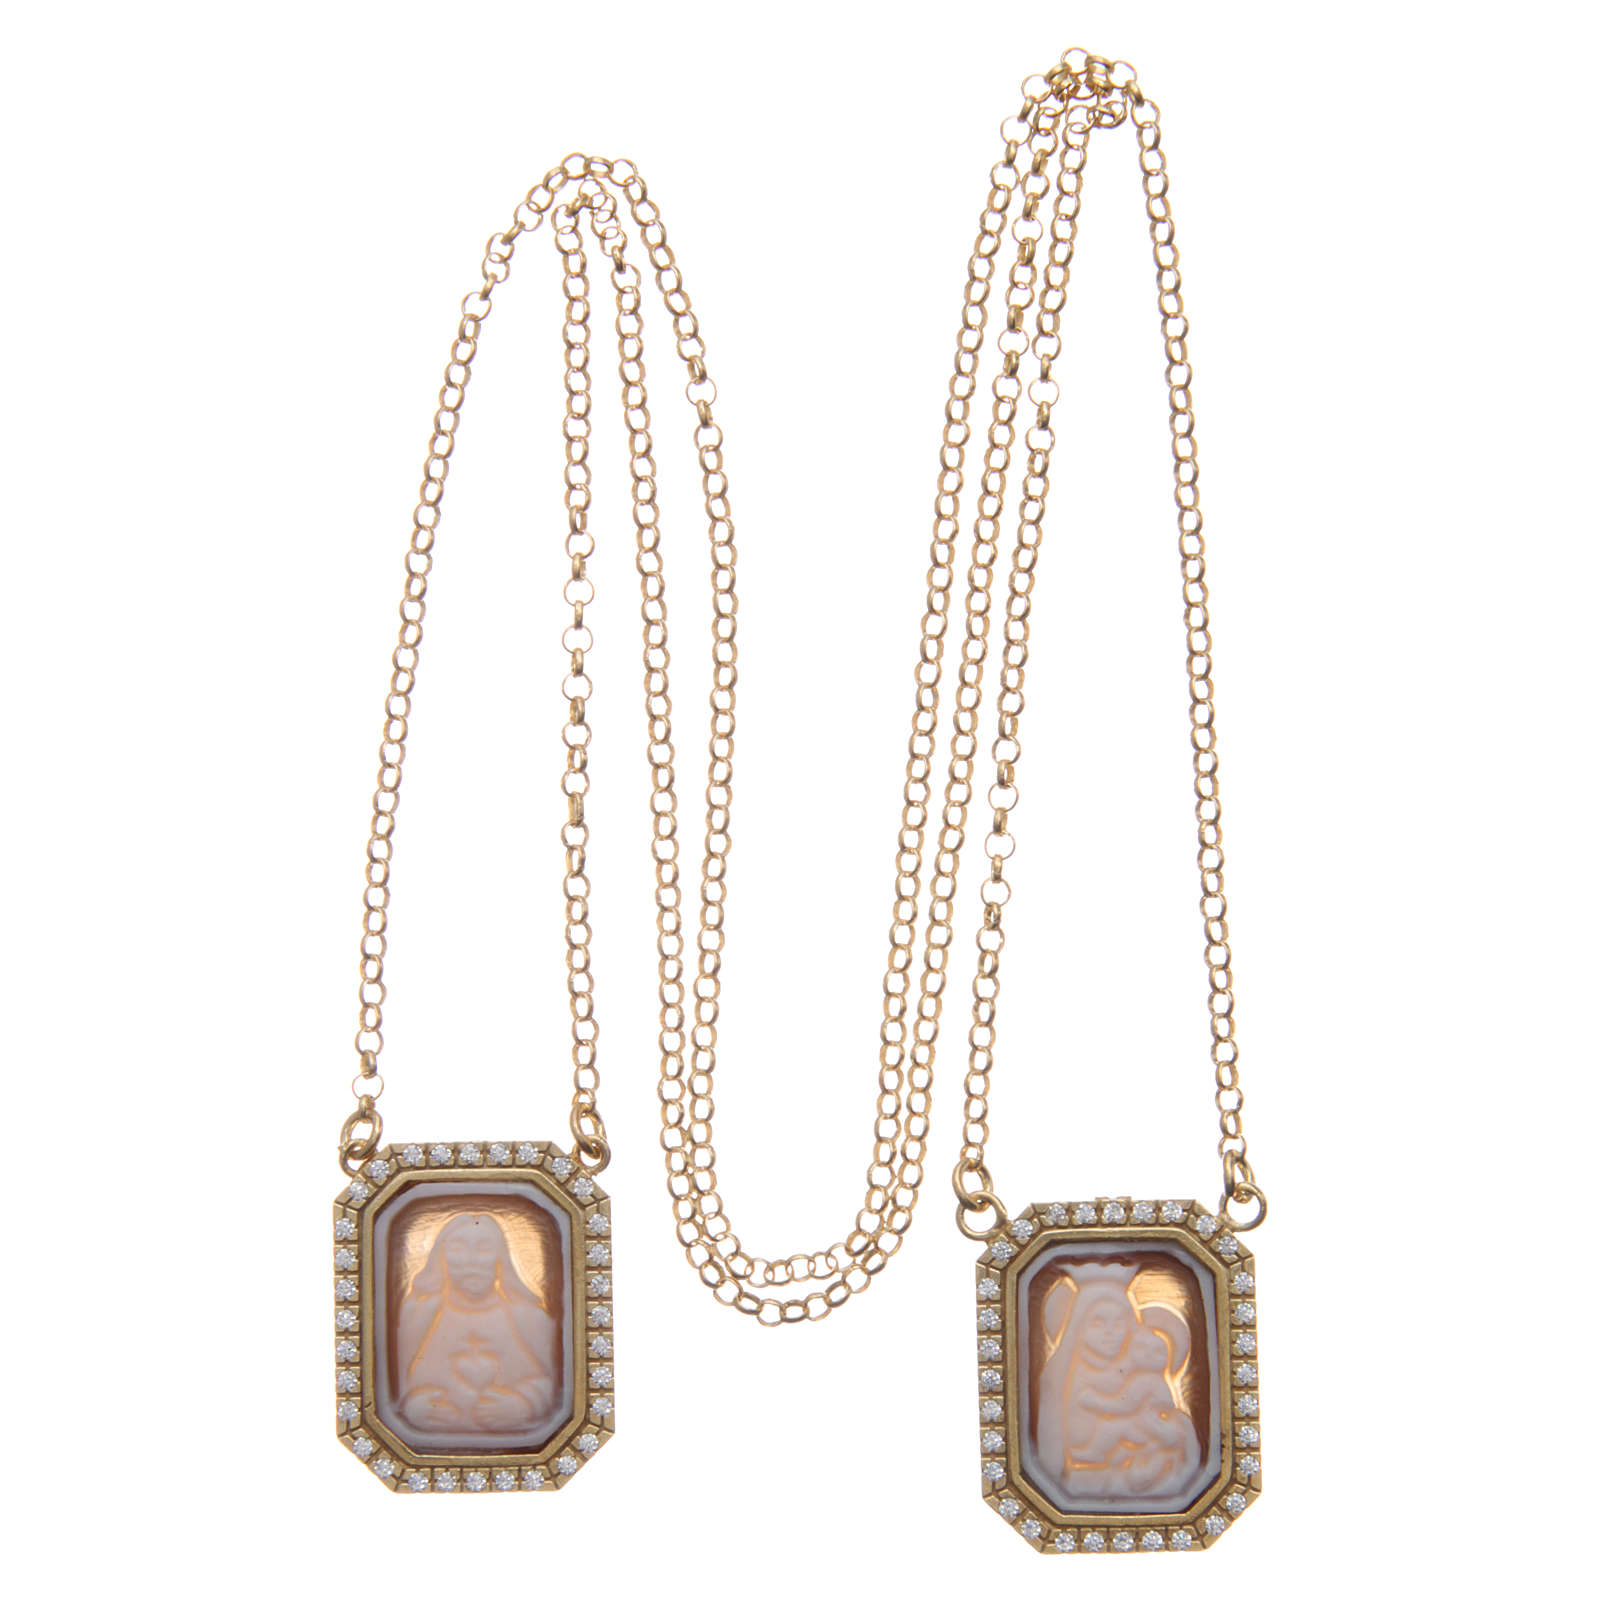 Bachelor necklace in golden 925 sterling silver with octagonal medals, white zircons and cammeos 4